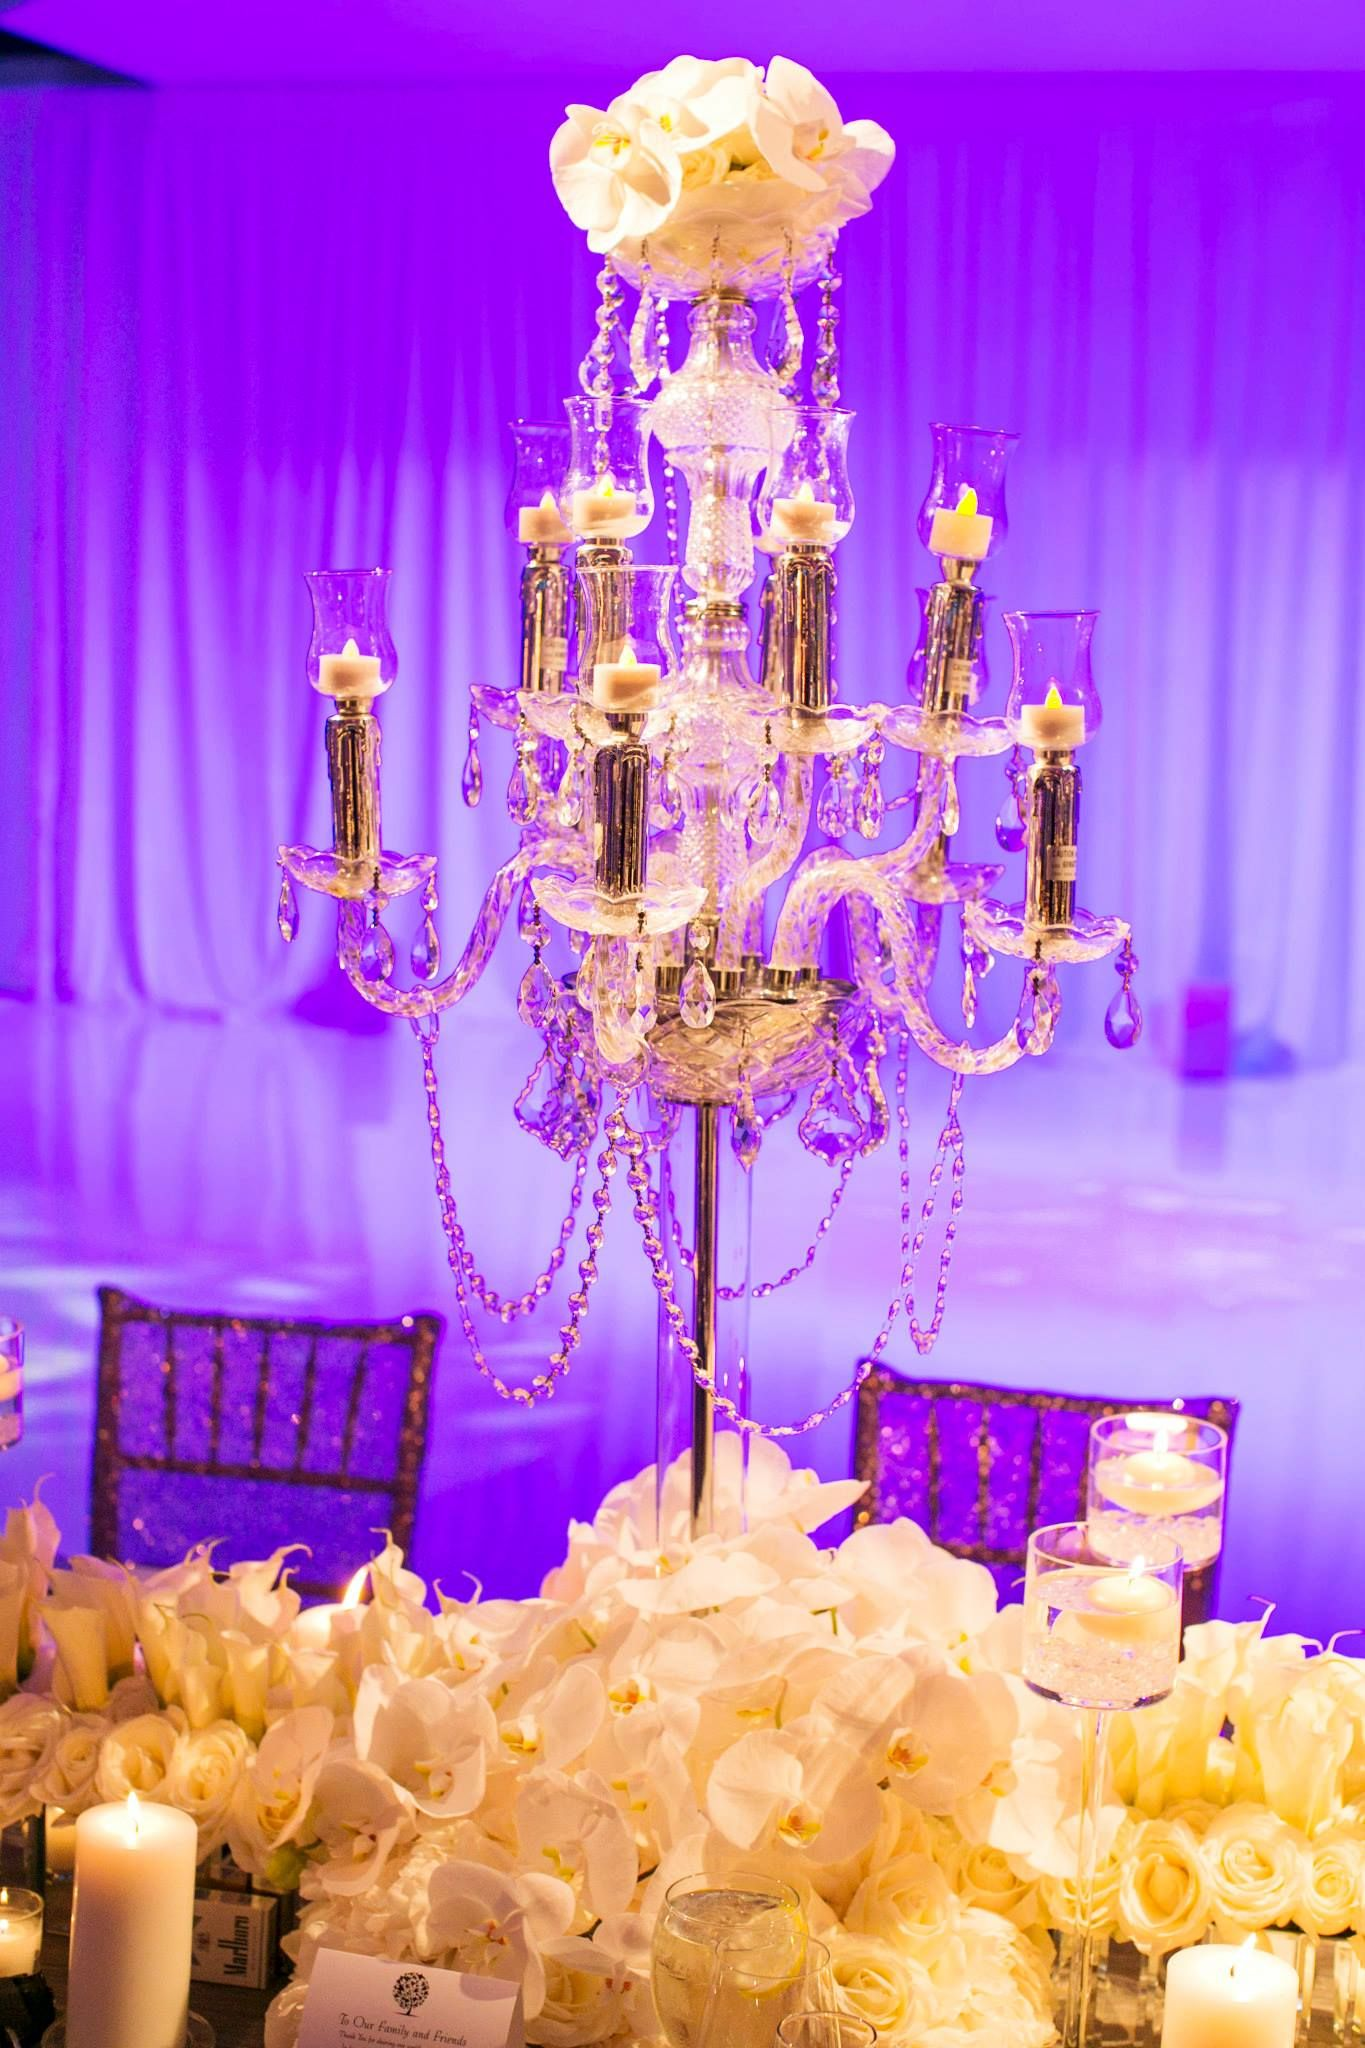 Wedding night decoration ideas  Event planning and design never looked so good Based in New York